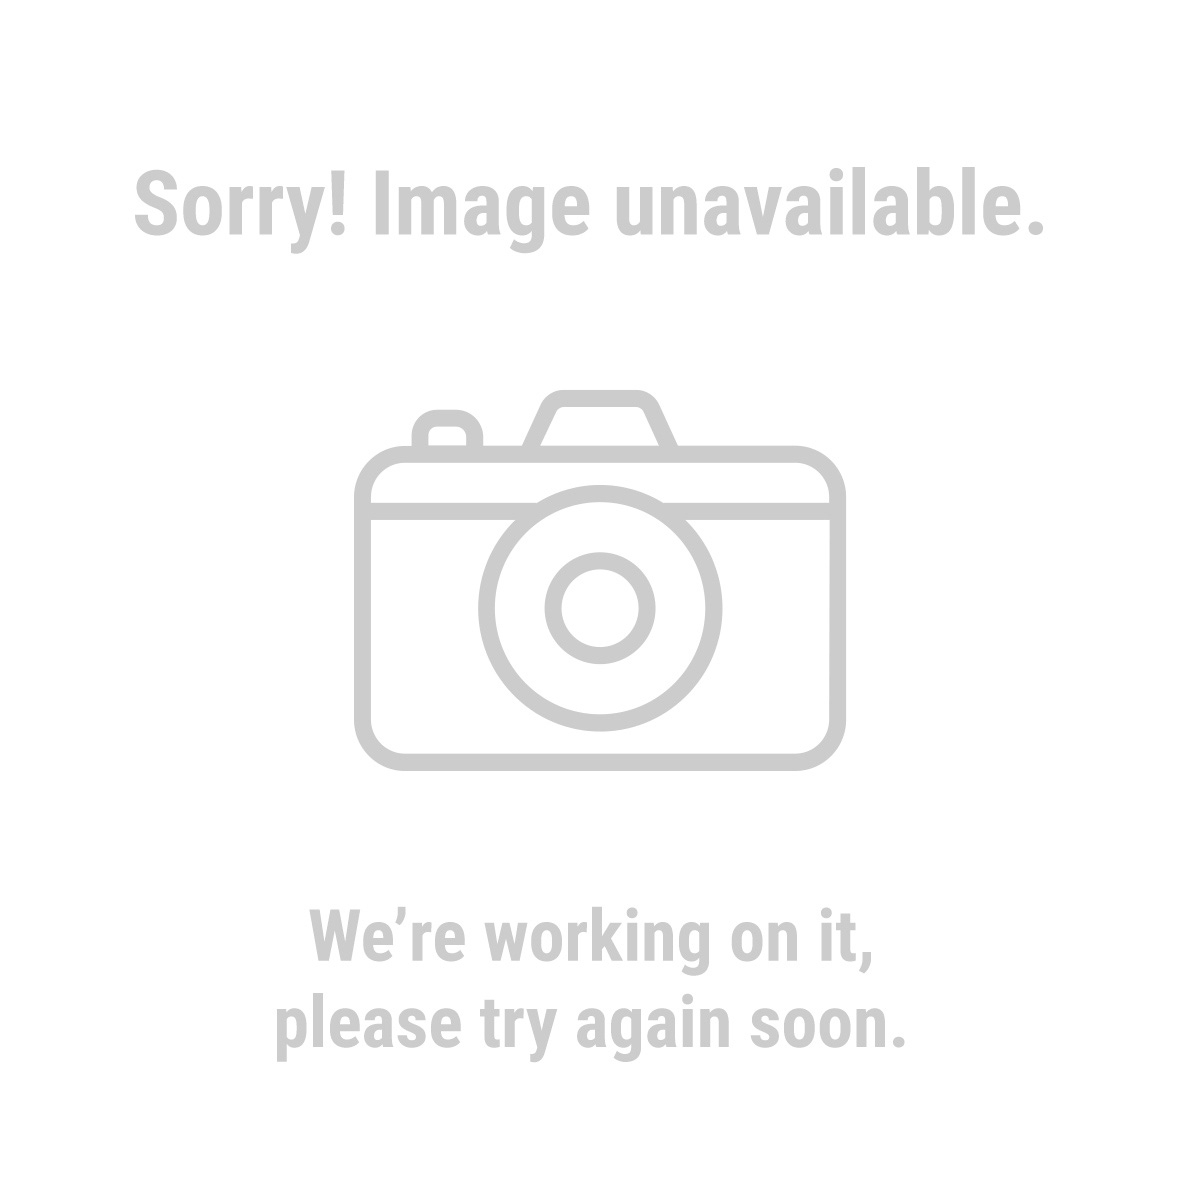 Haul-Master® 61789 50 ft. x 1/4 in. Aircraft Grade Wire Rope